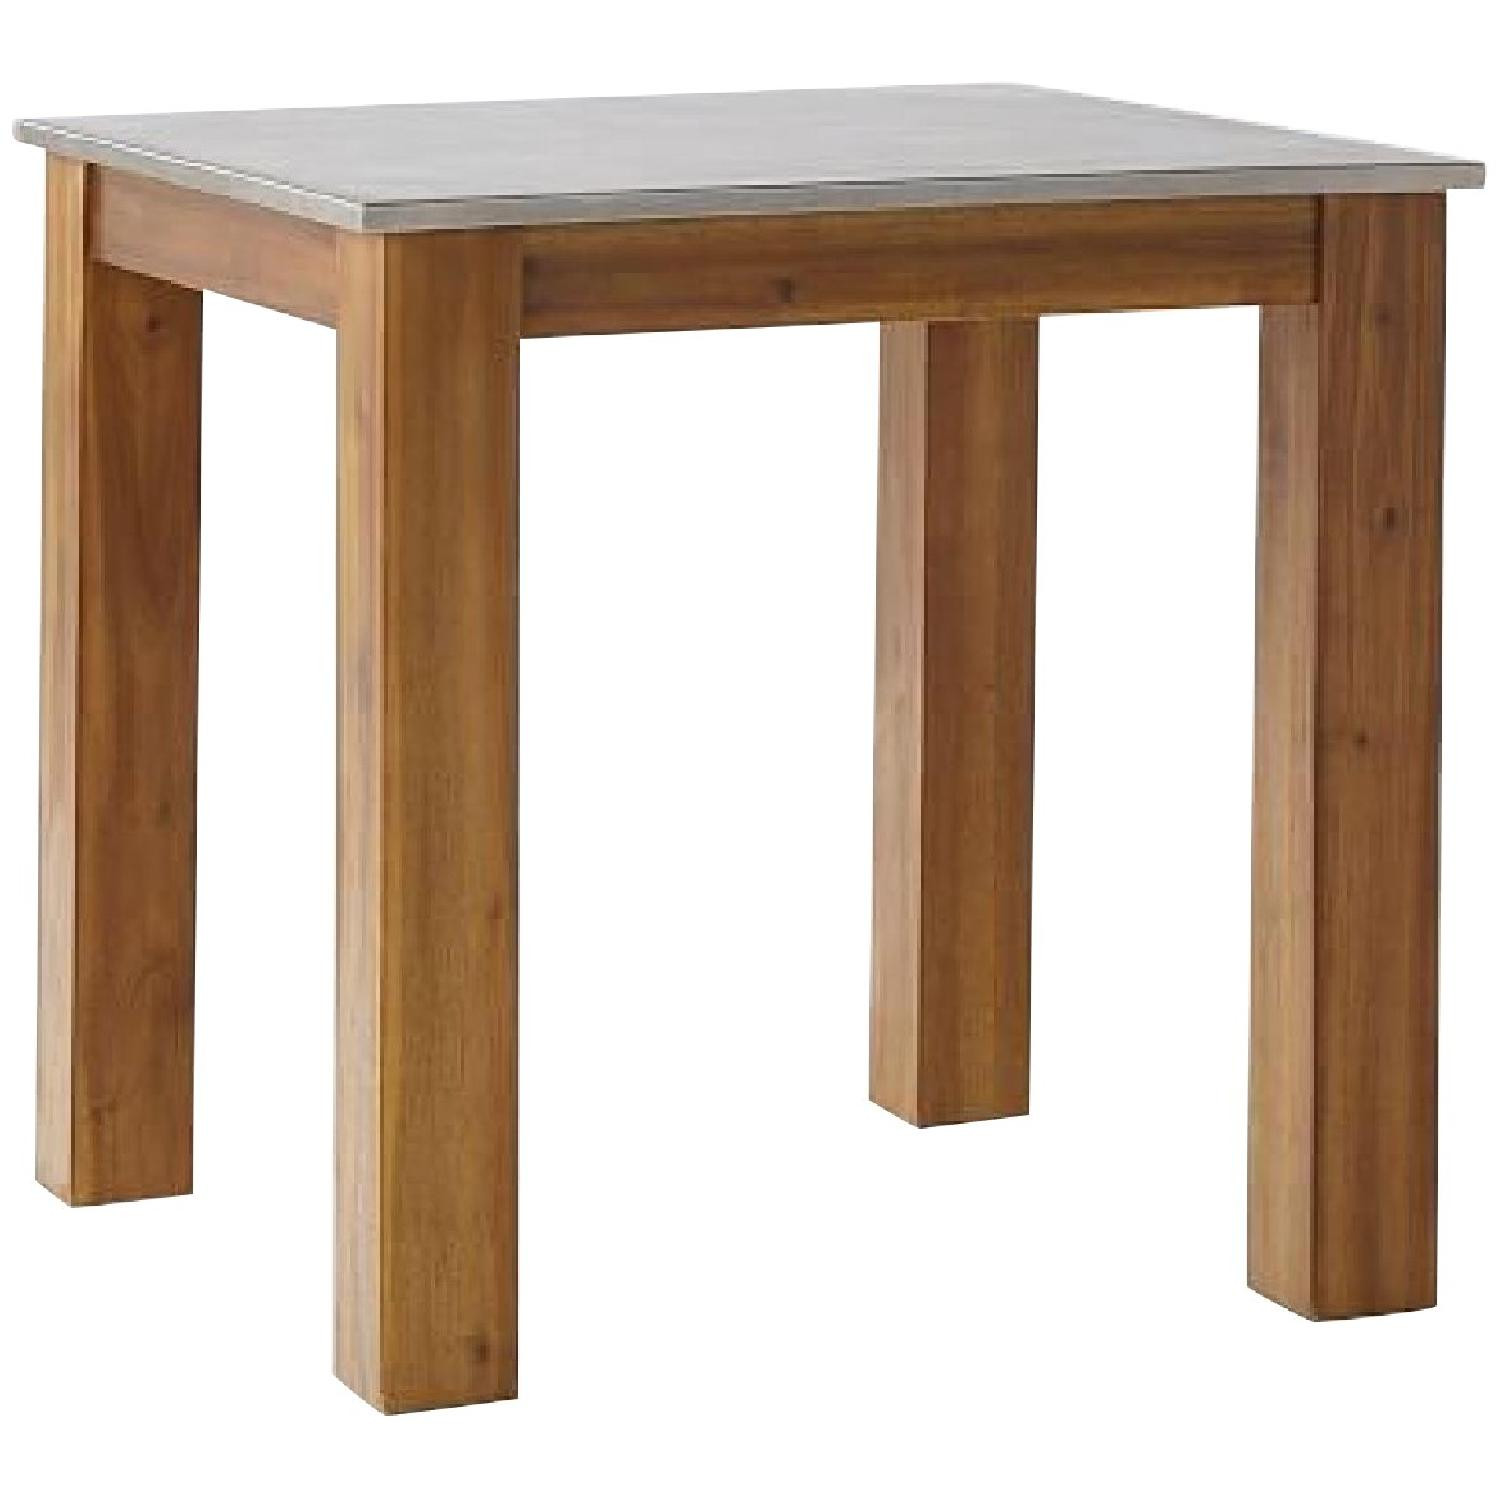 West Elm Acacia Rustic Kitchen Table